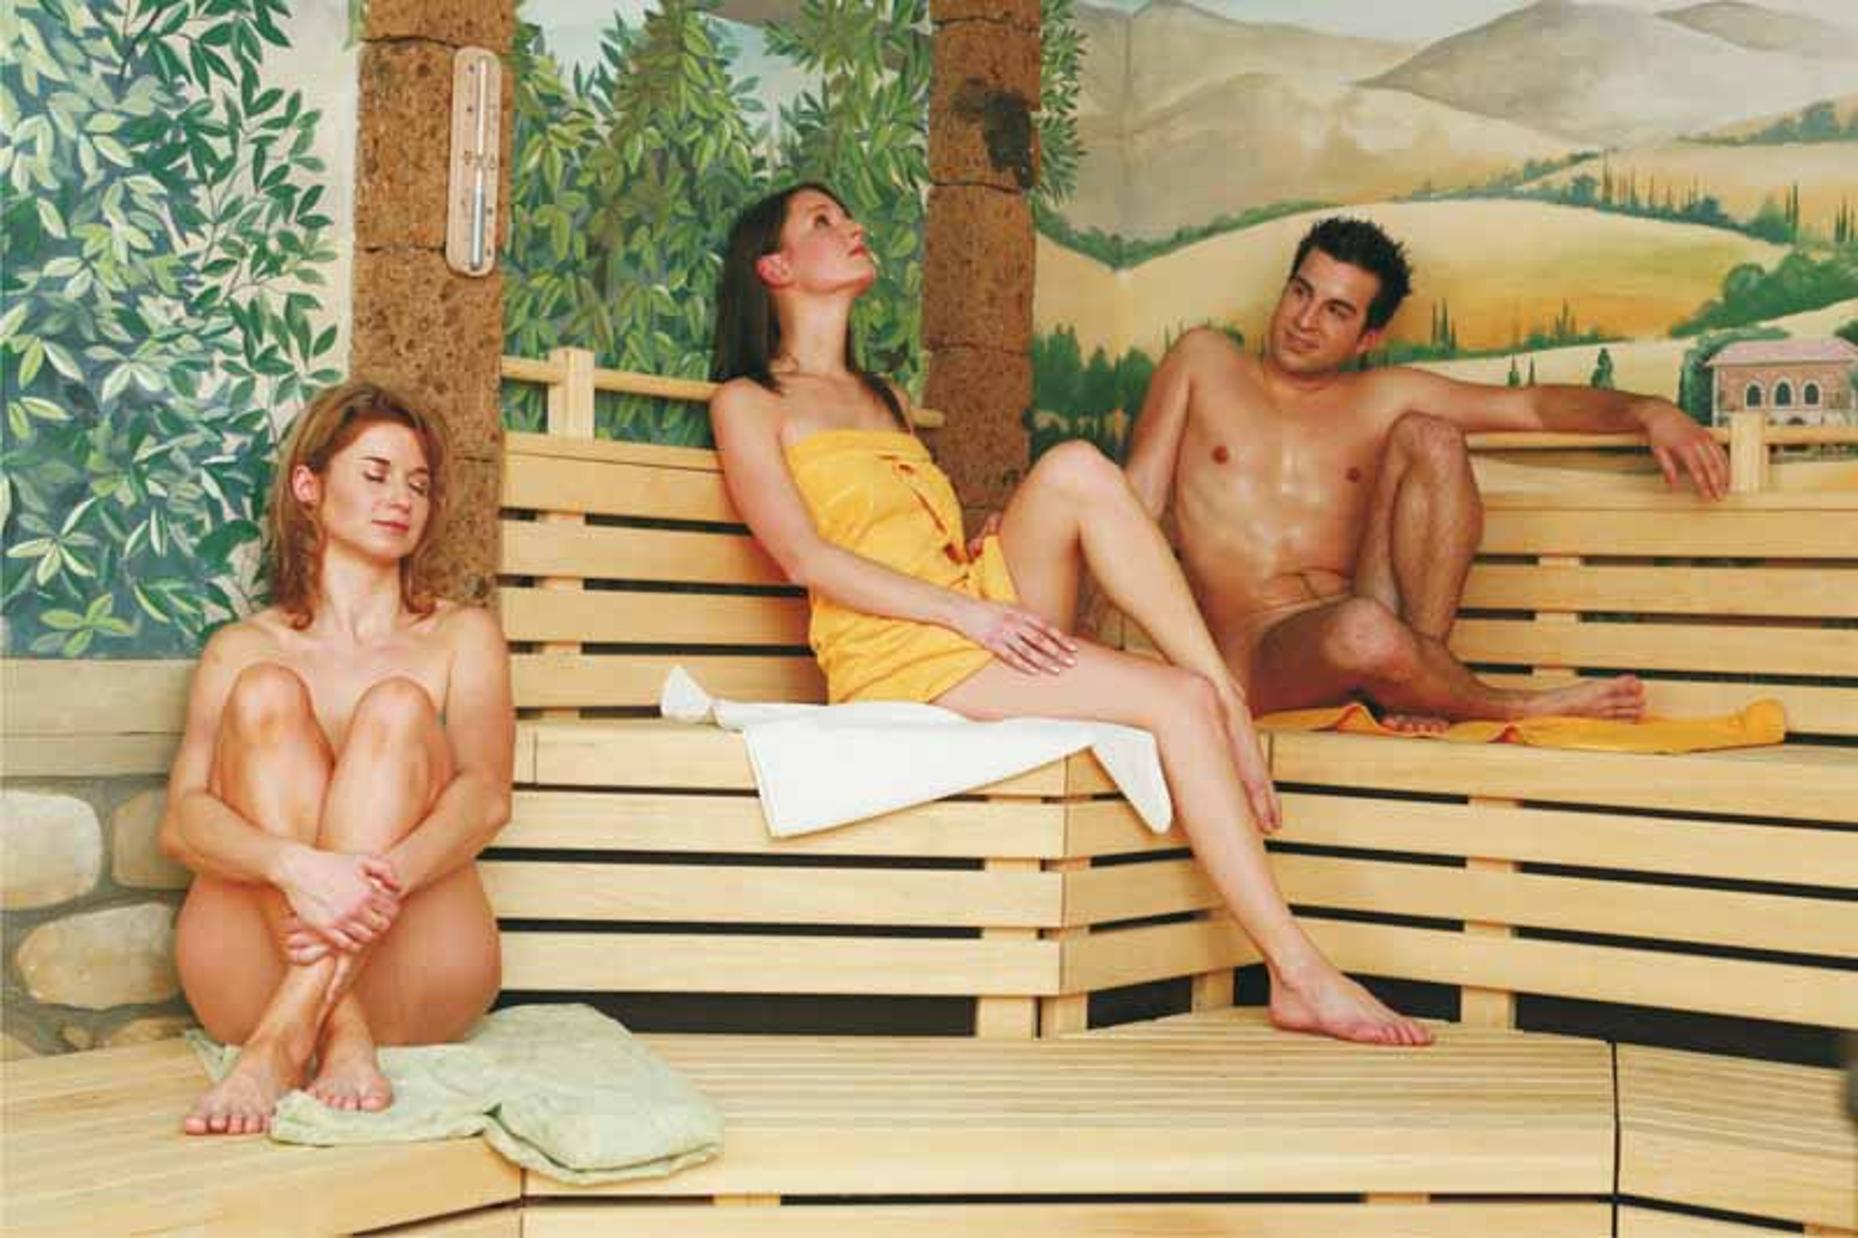 Mature nymphs relieving in a sauna mature women